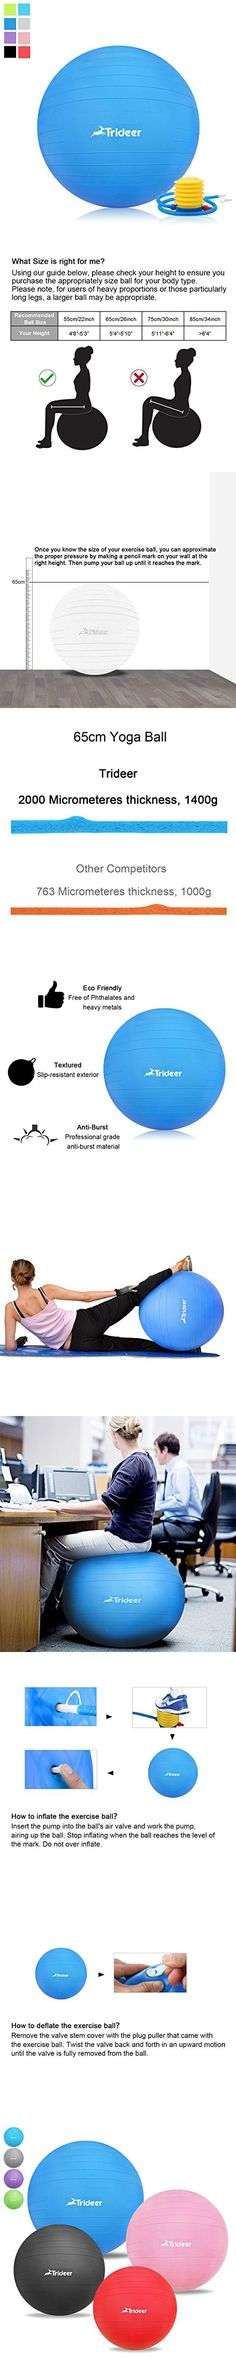 Yoga Ball 65cm with Resistance Straps The Biggest Loser Gym Ball Fitness Ball